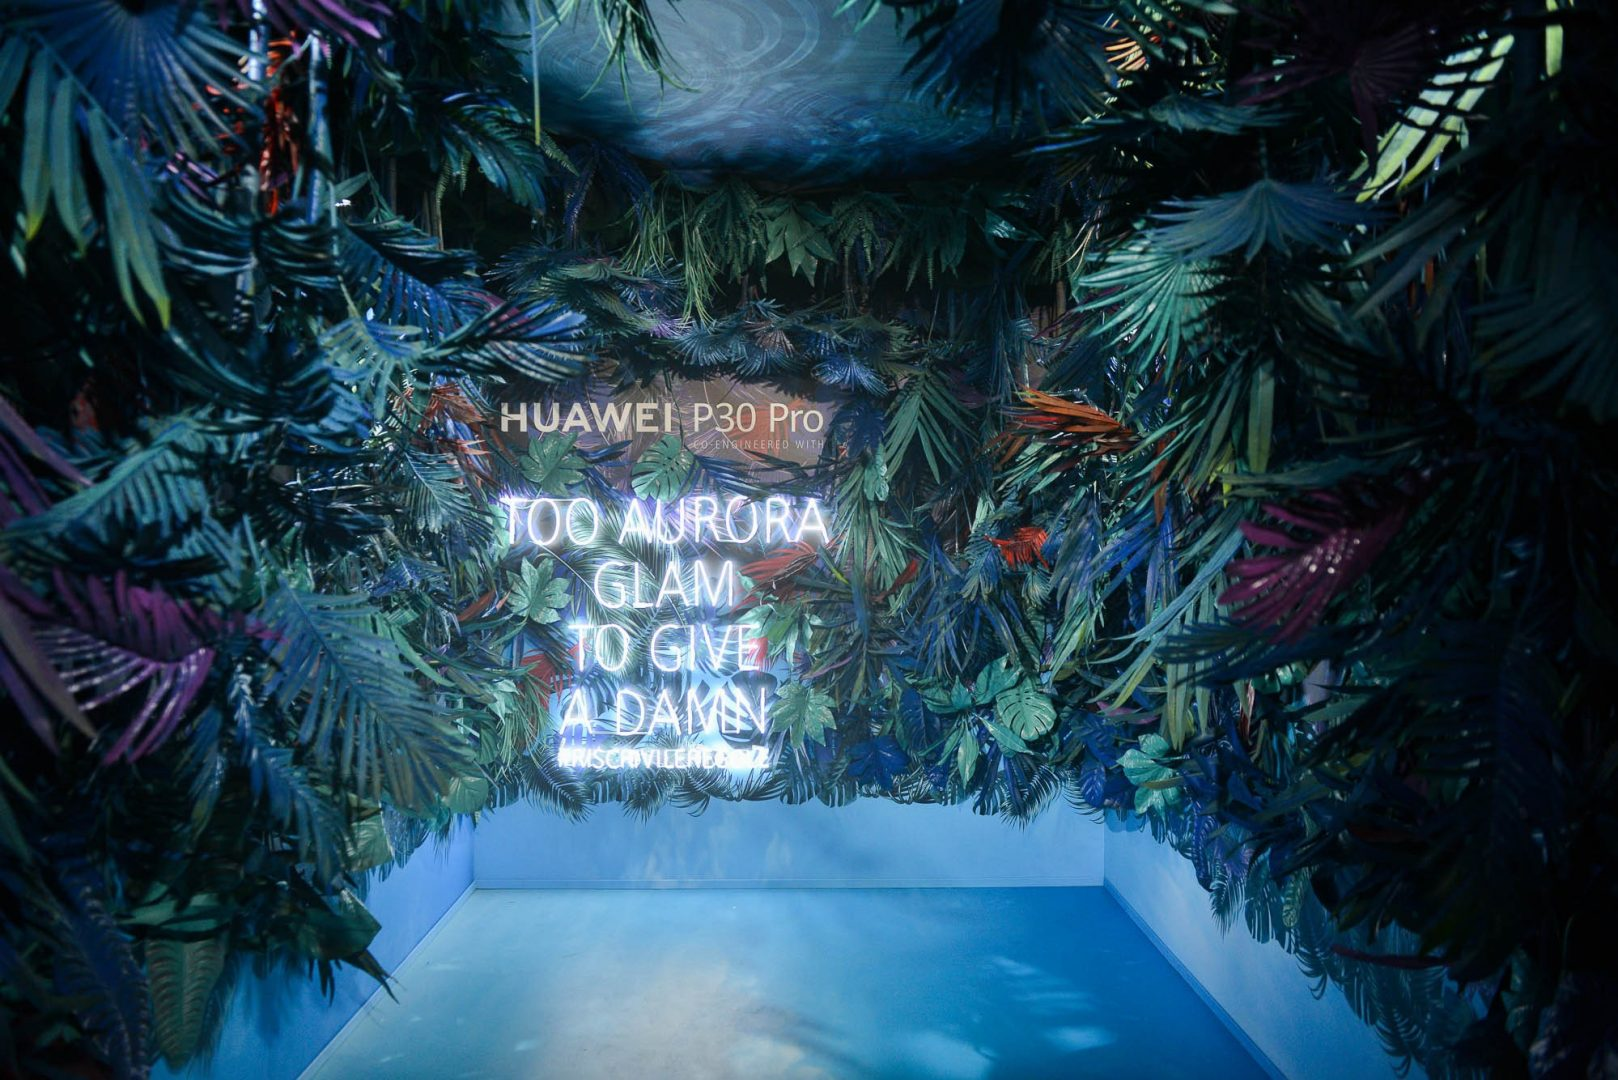 LFM Group per Huawei 2019 - Experience Box for playful/sensory effects for IG photos